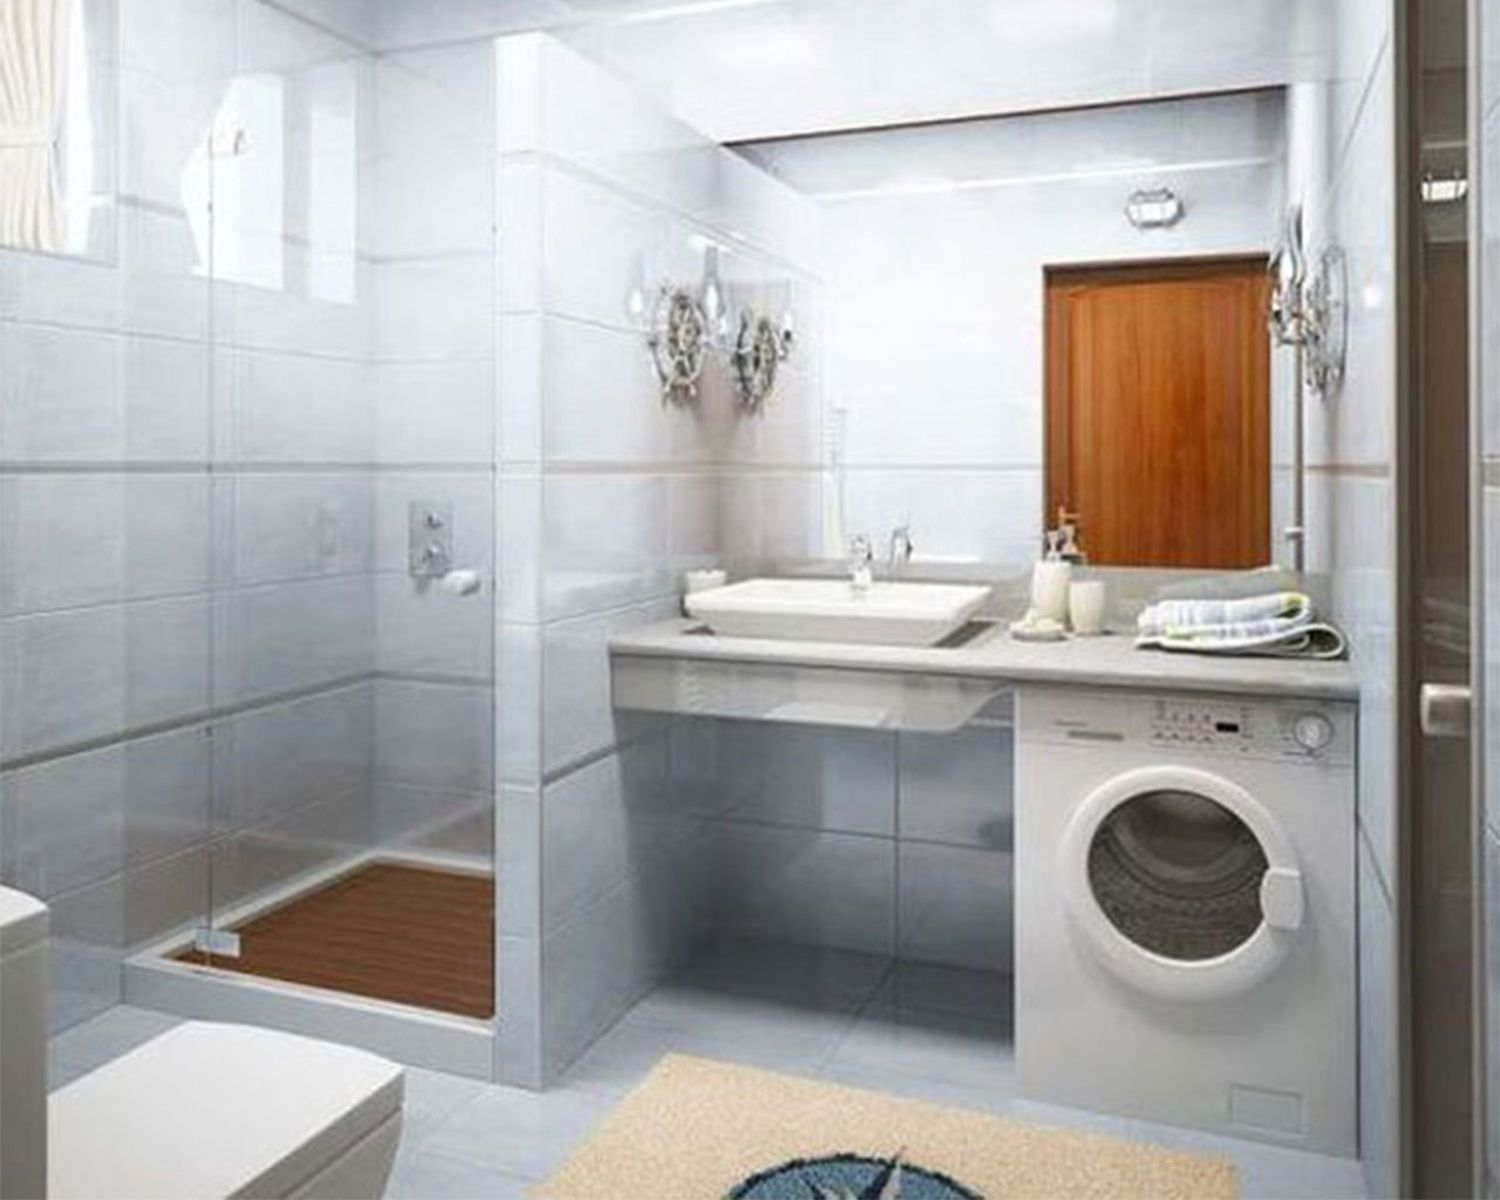 srilankan bathroom designs find best latest srilankan bathroom designs for your pc desktop background mobile - Small Bathroom Design Layout Ideas